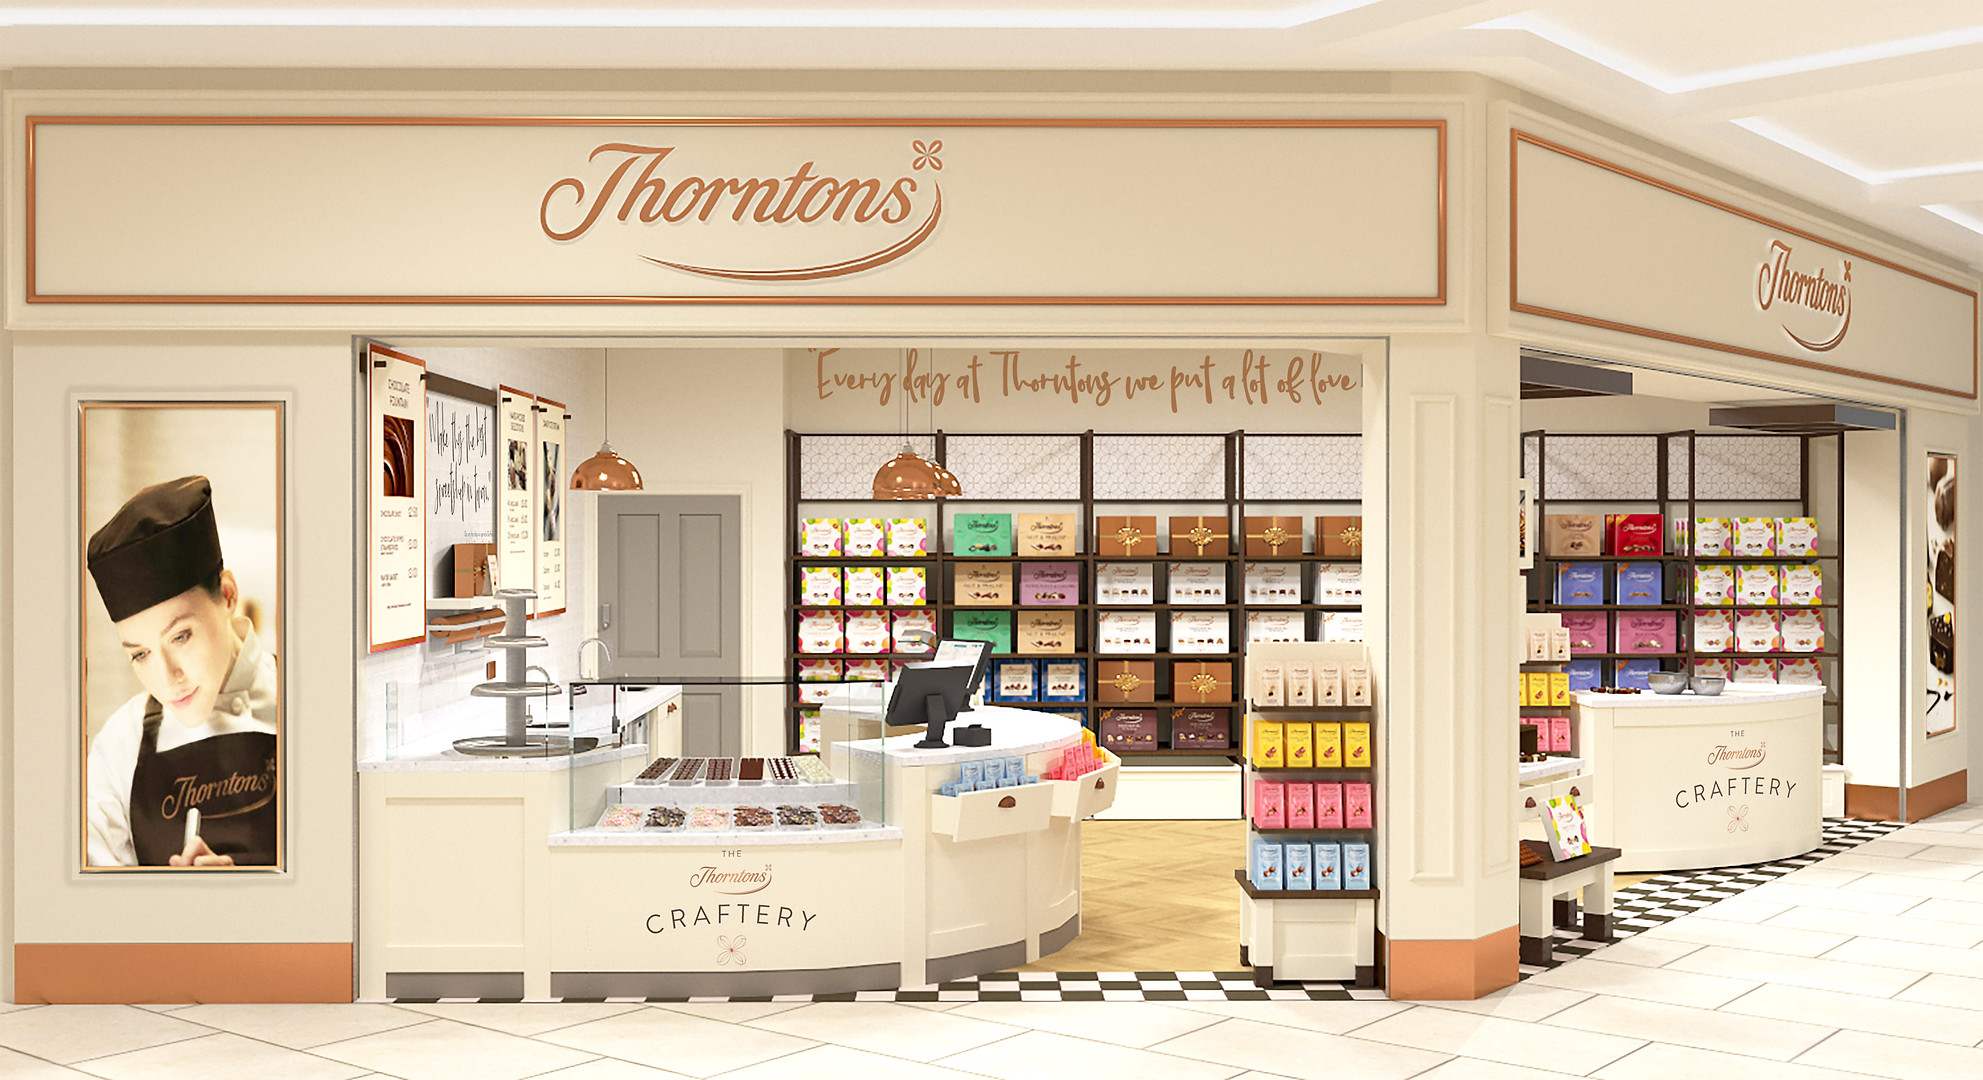 Thorntons - Retail